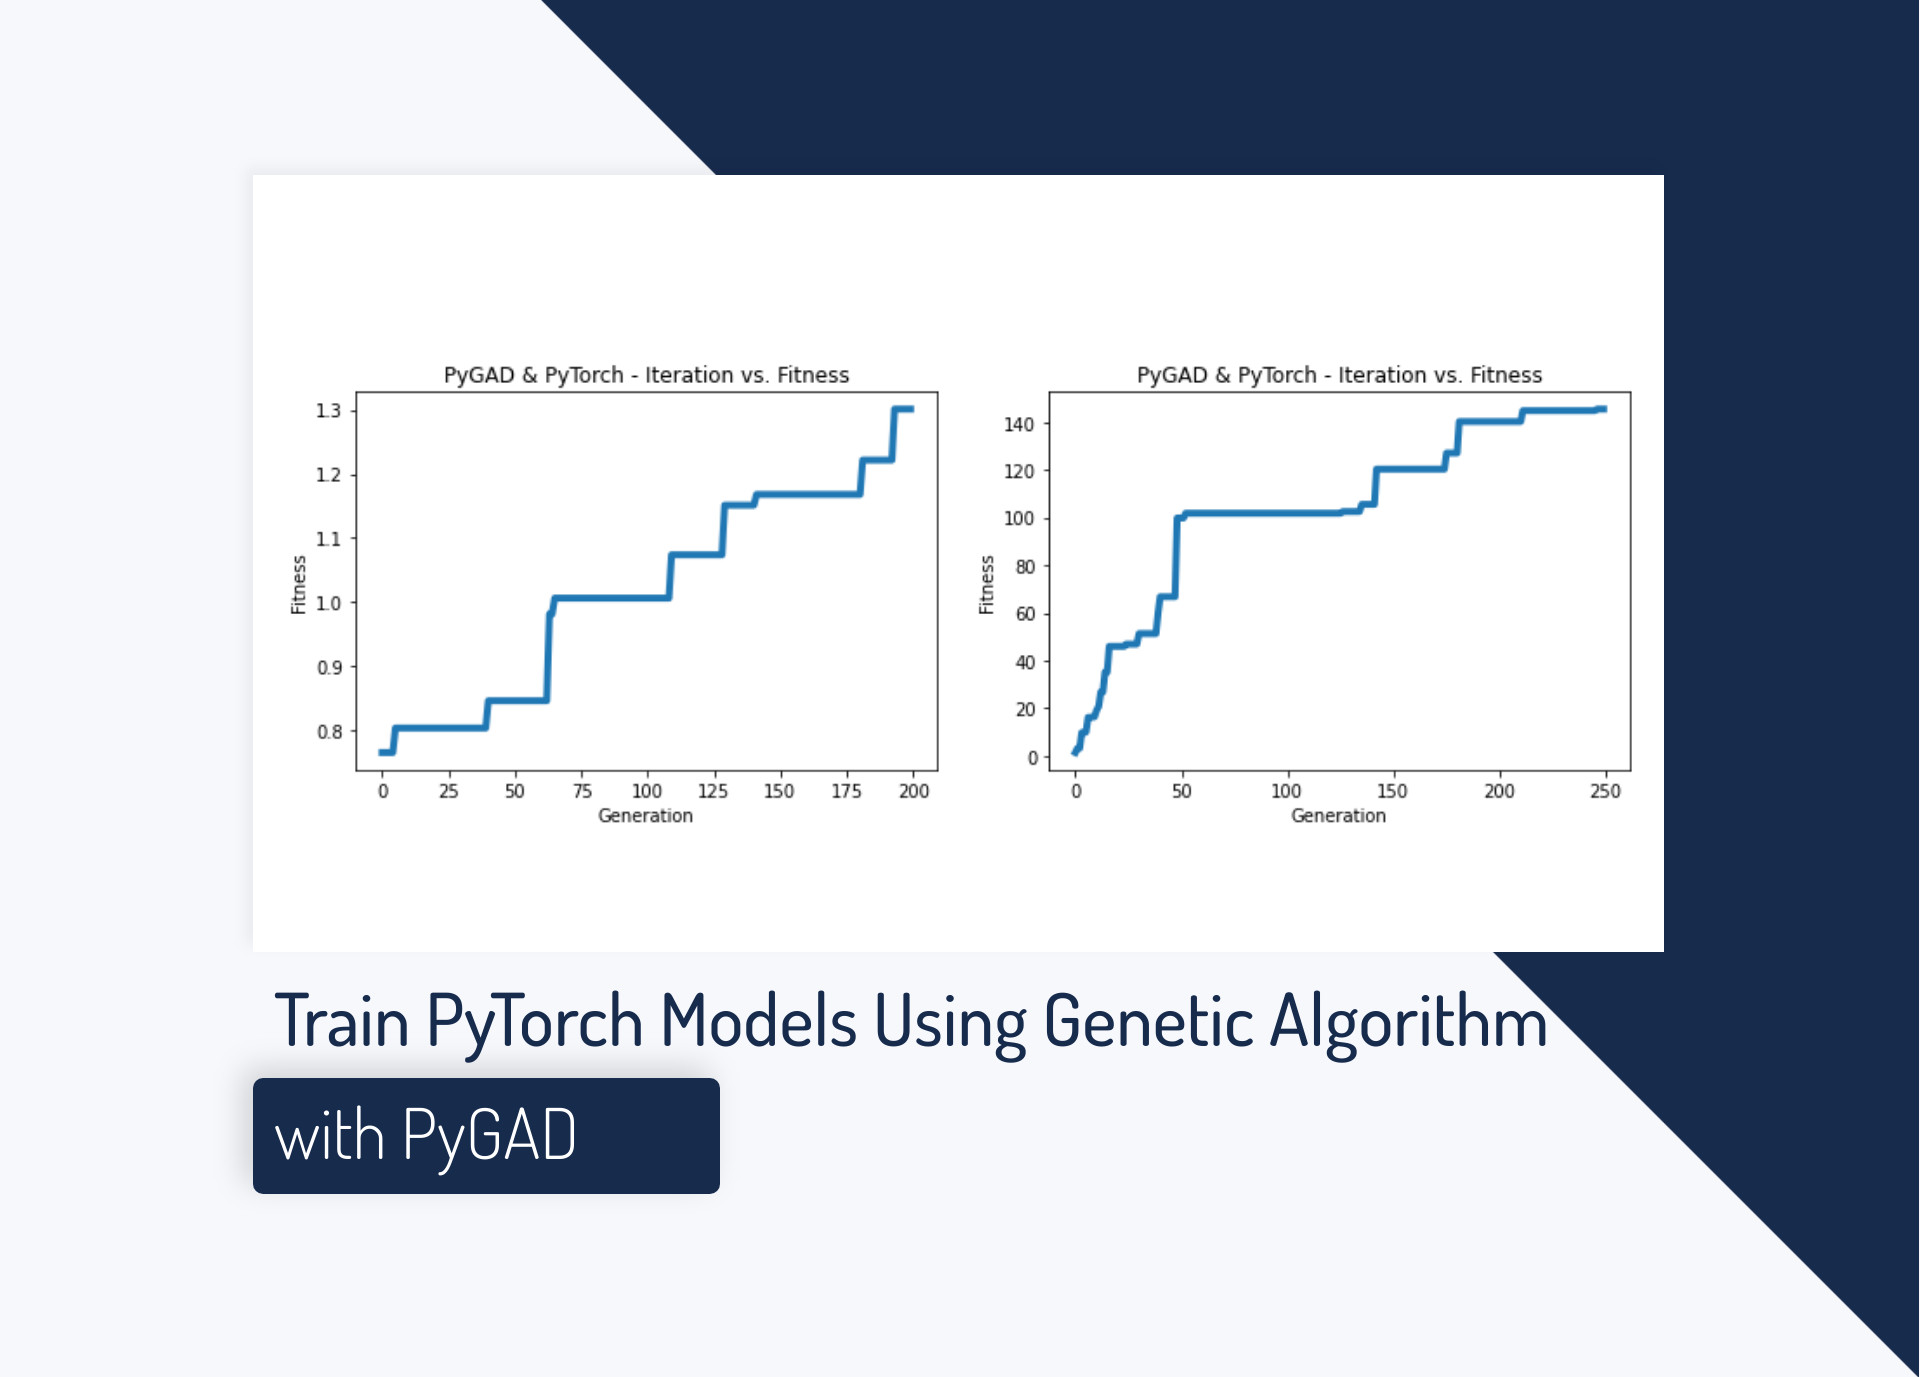 Train PyTorch Models Using Genetic Algorithm with PyGAD